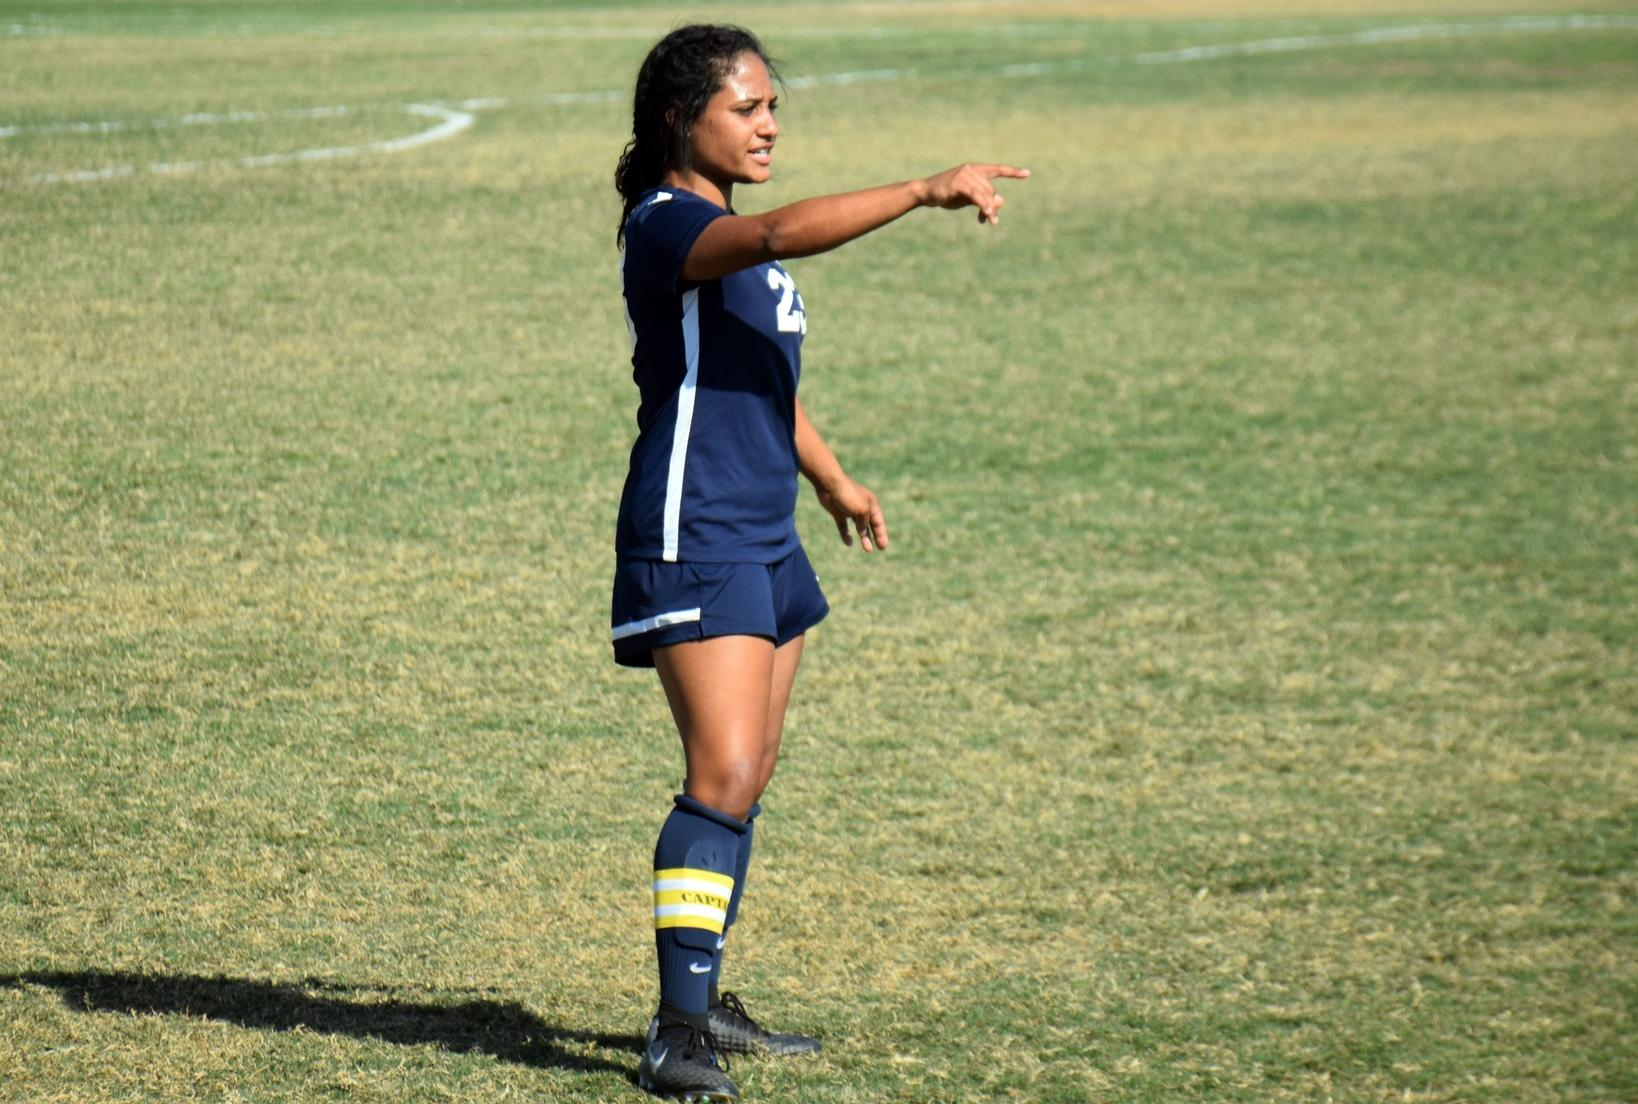 Women's soccer team plays tough in draw at Orange Coast